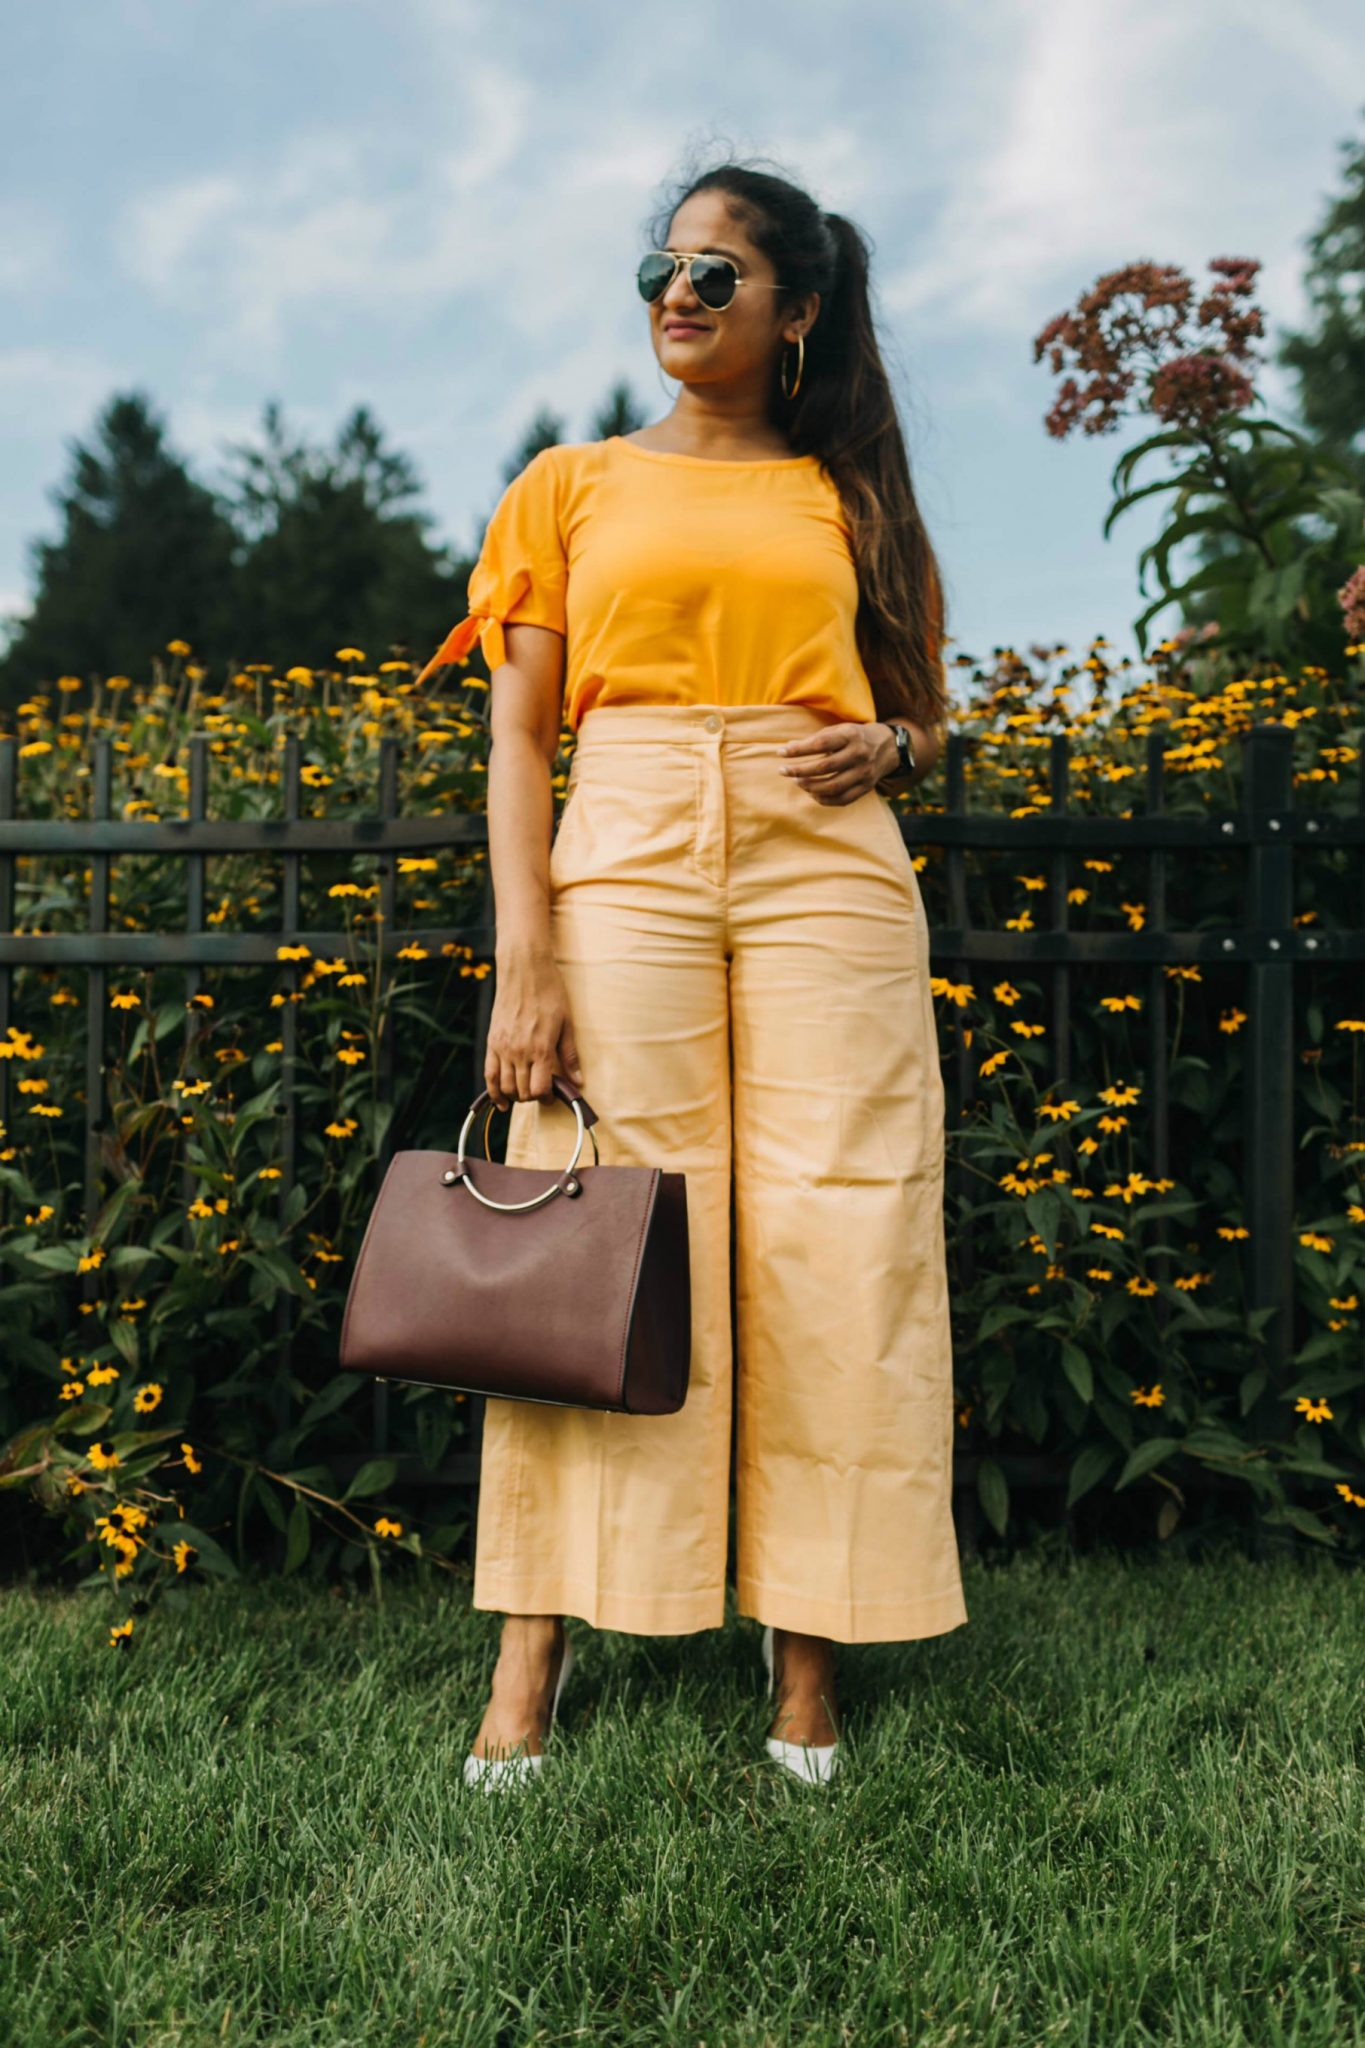 How to wear or style orange pants or trousers | Orange Monochrome Outfit from the Ann Taylor Sale featured by popular US modest fashion blogger, Dreaming Loud